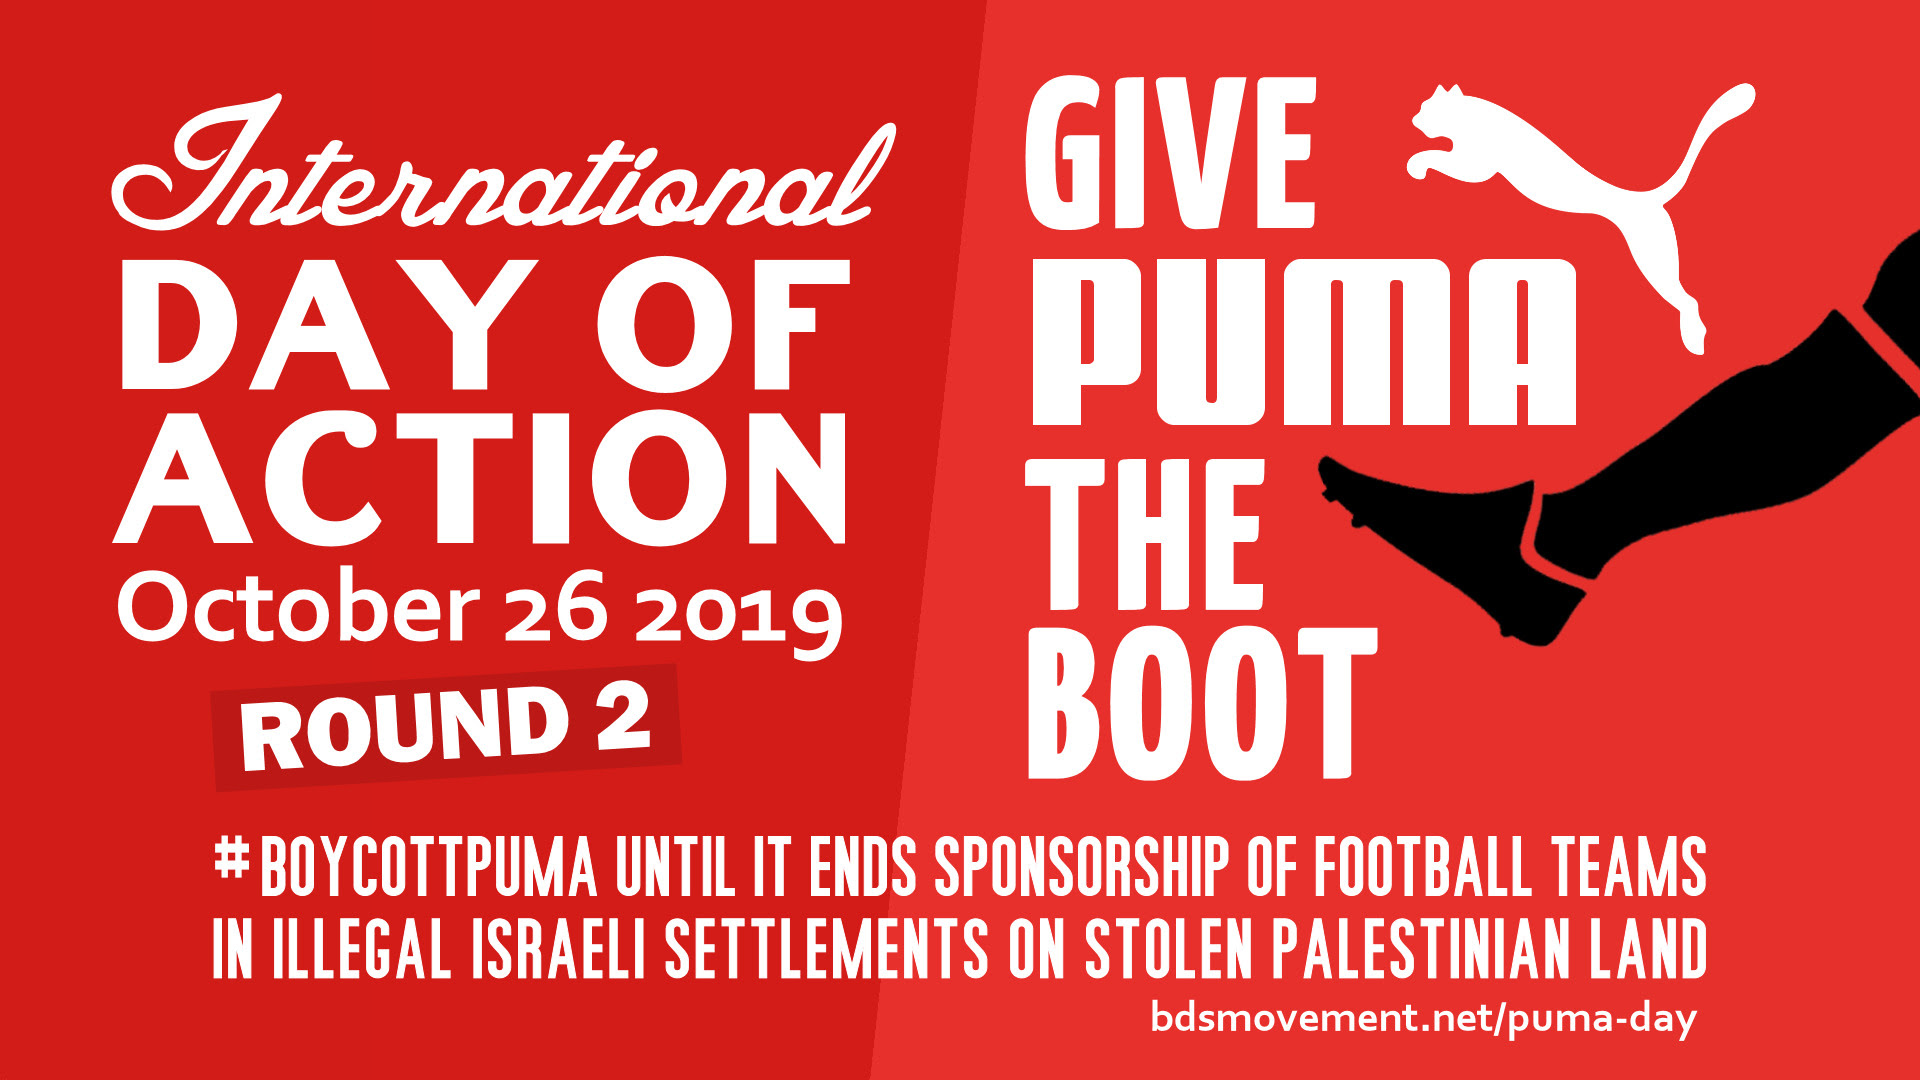 Second Global Boycott Puma Day of Action, Oct 26